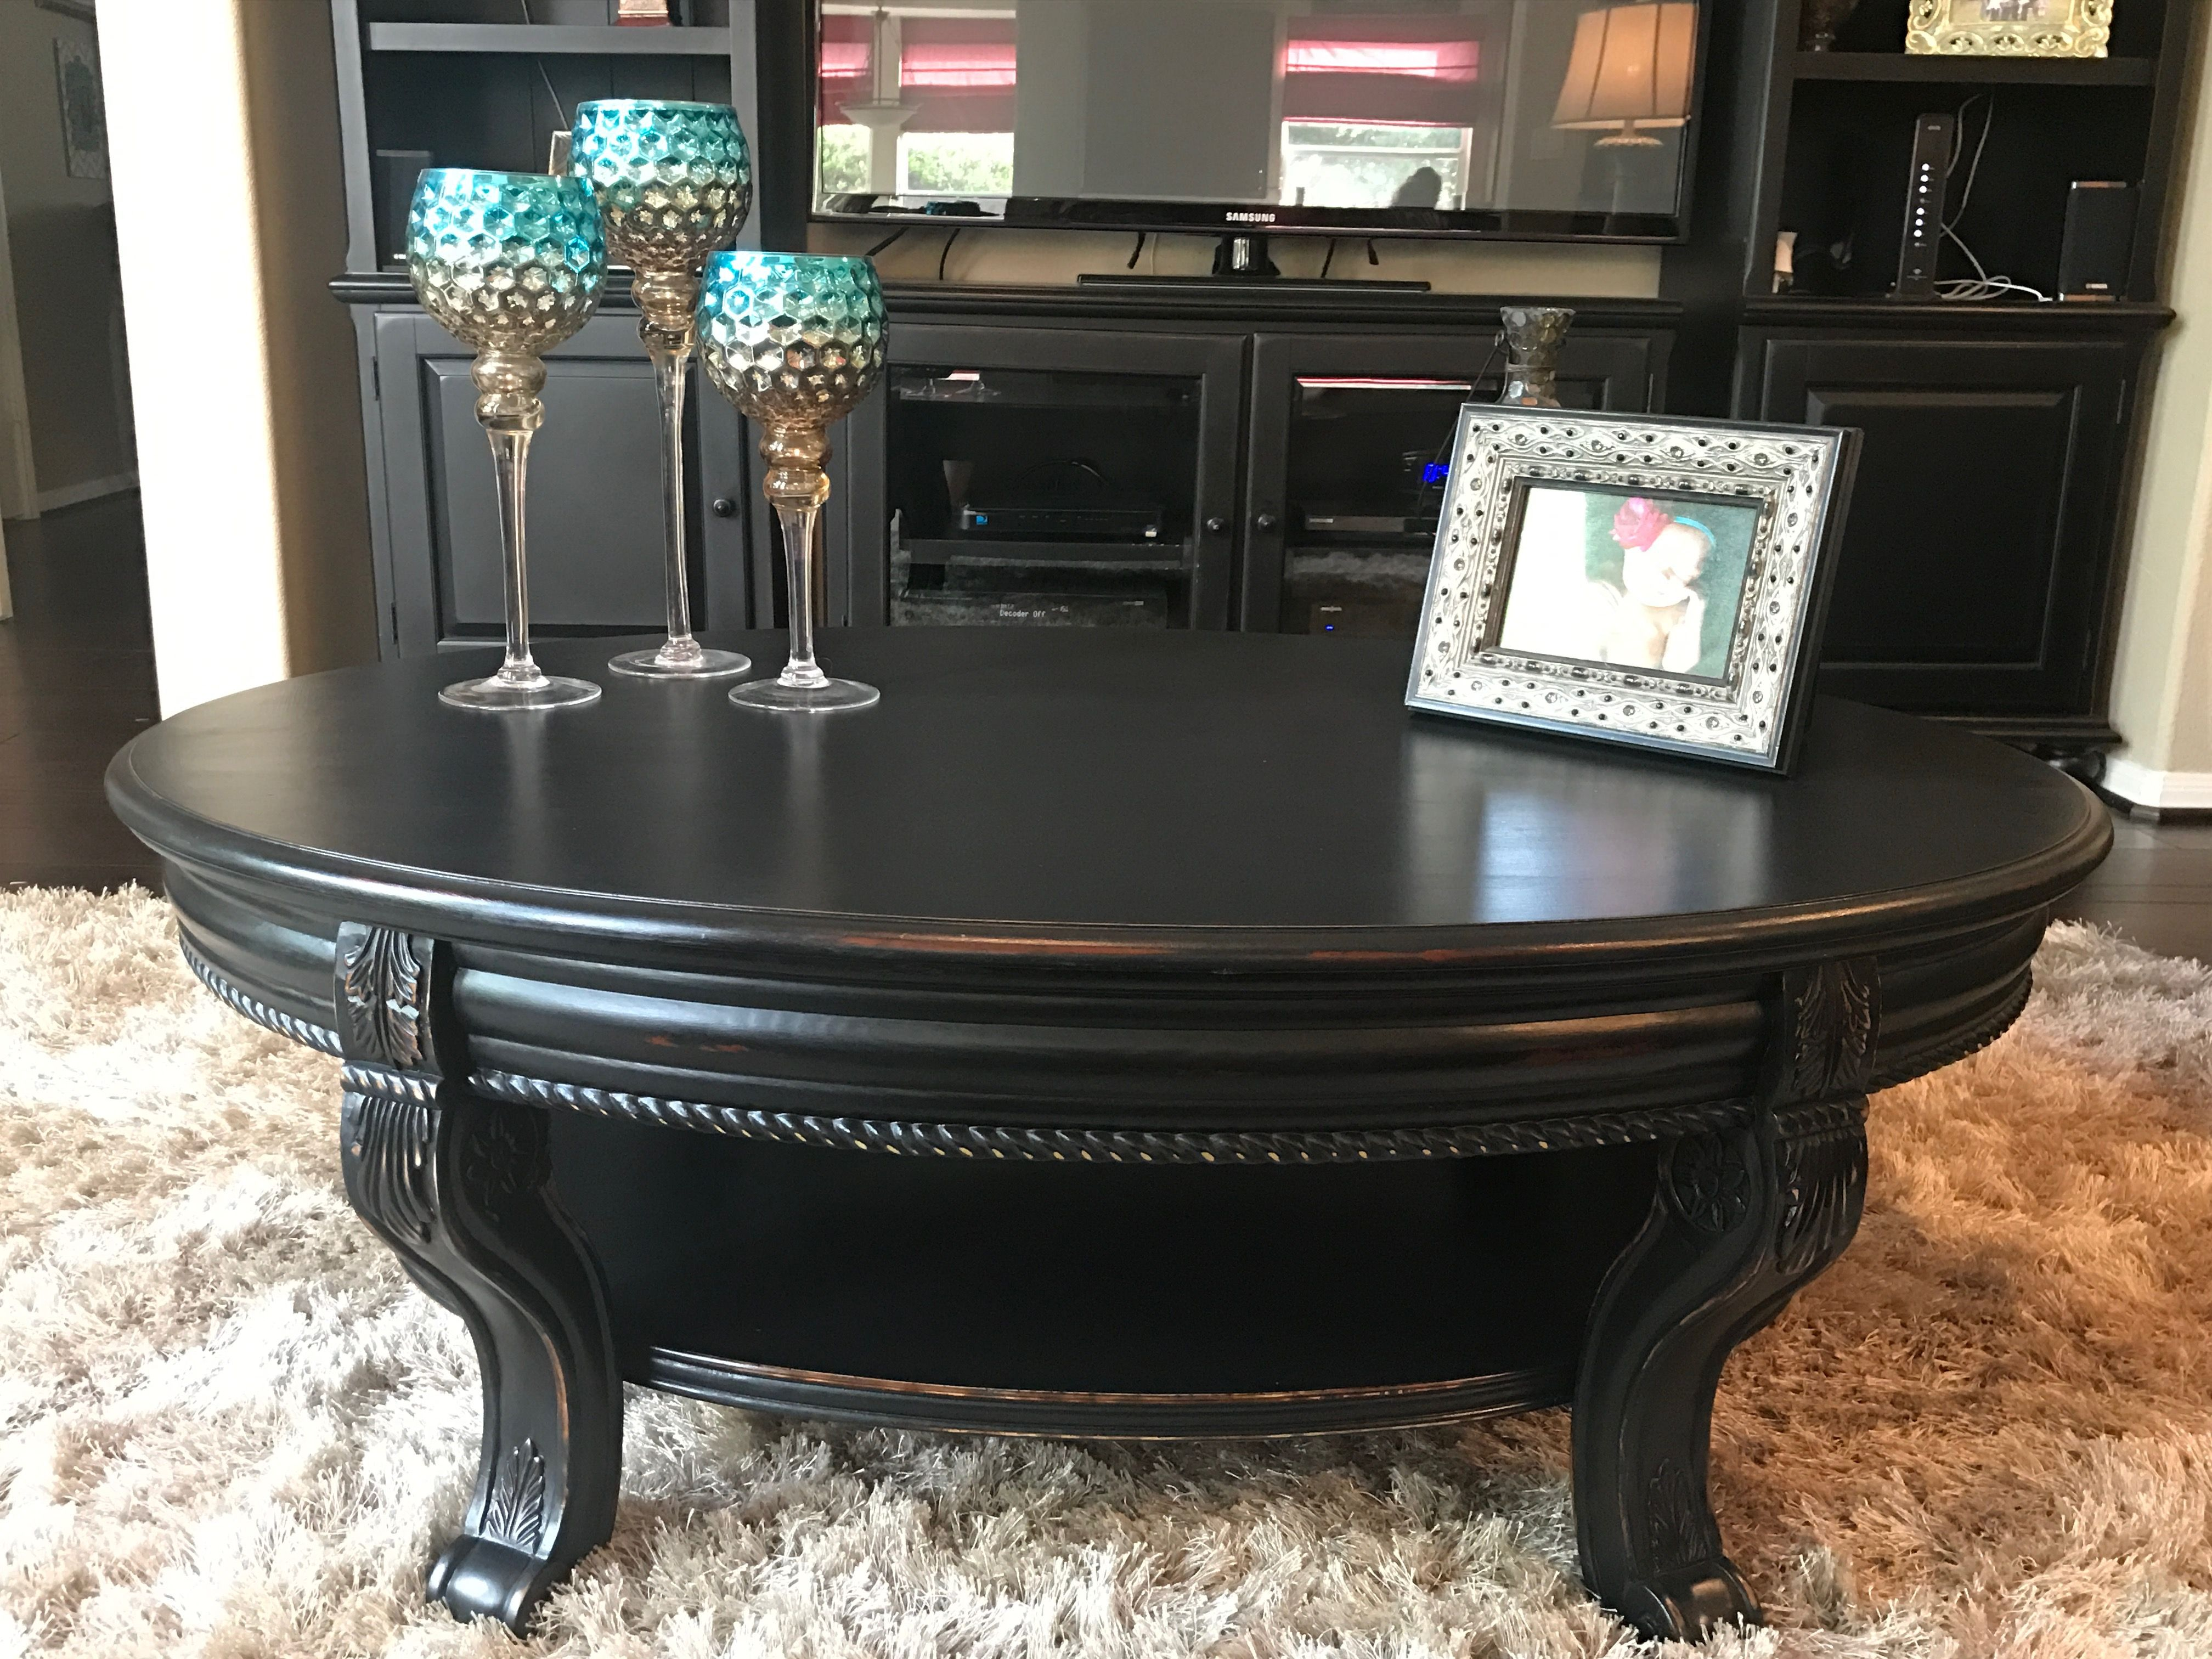 Coffee Table Refinished In Valspar Black Boots And Distressed Gorgeous Coffee Table Refinish Black Distressed Furniture Black Furniture Living Room